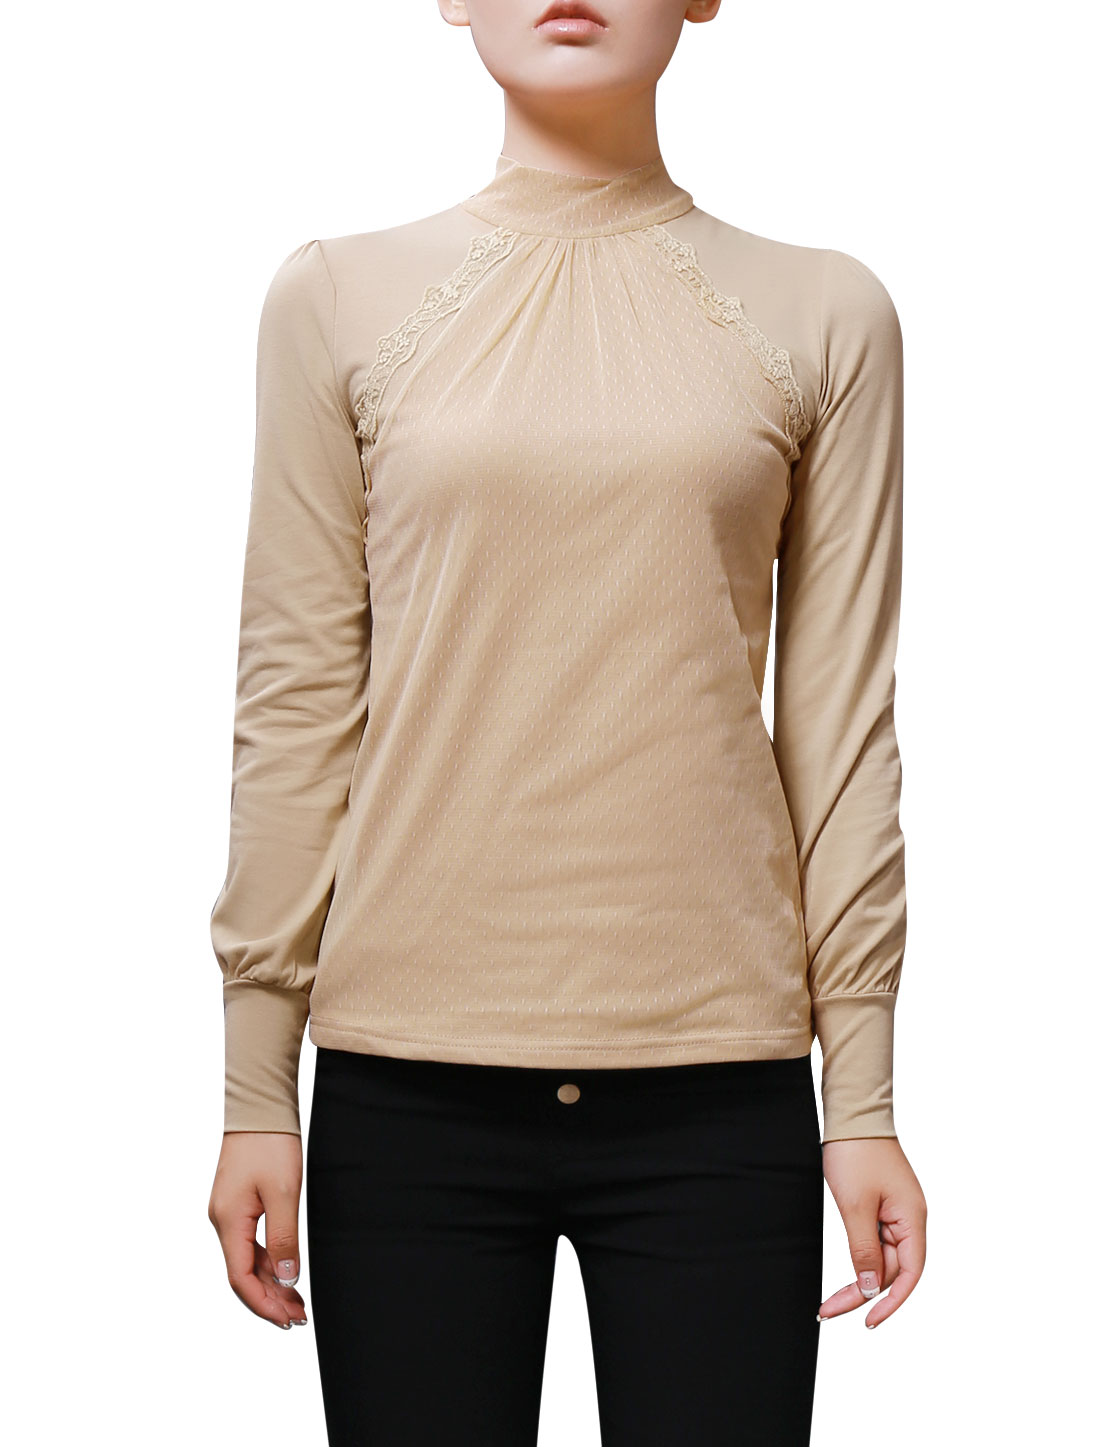 Women Stylish Pullover Mesh Splice Front Beige Casual Tops L